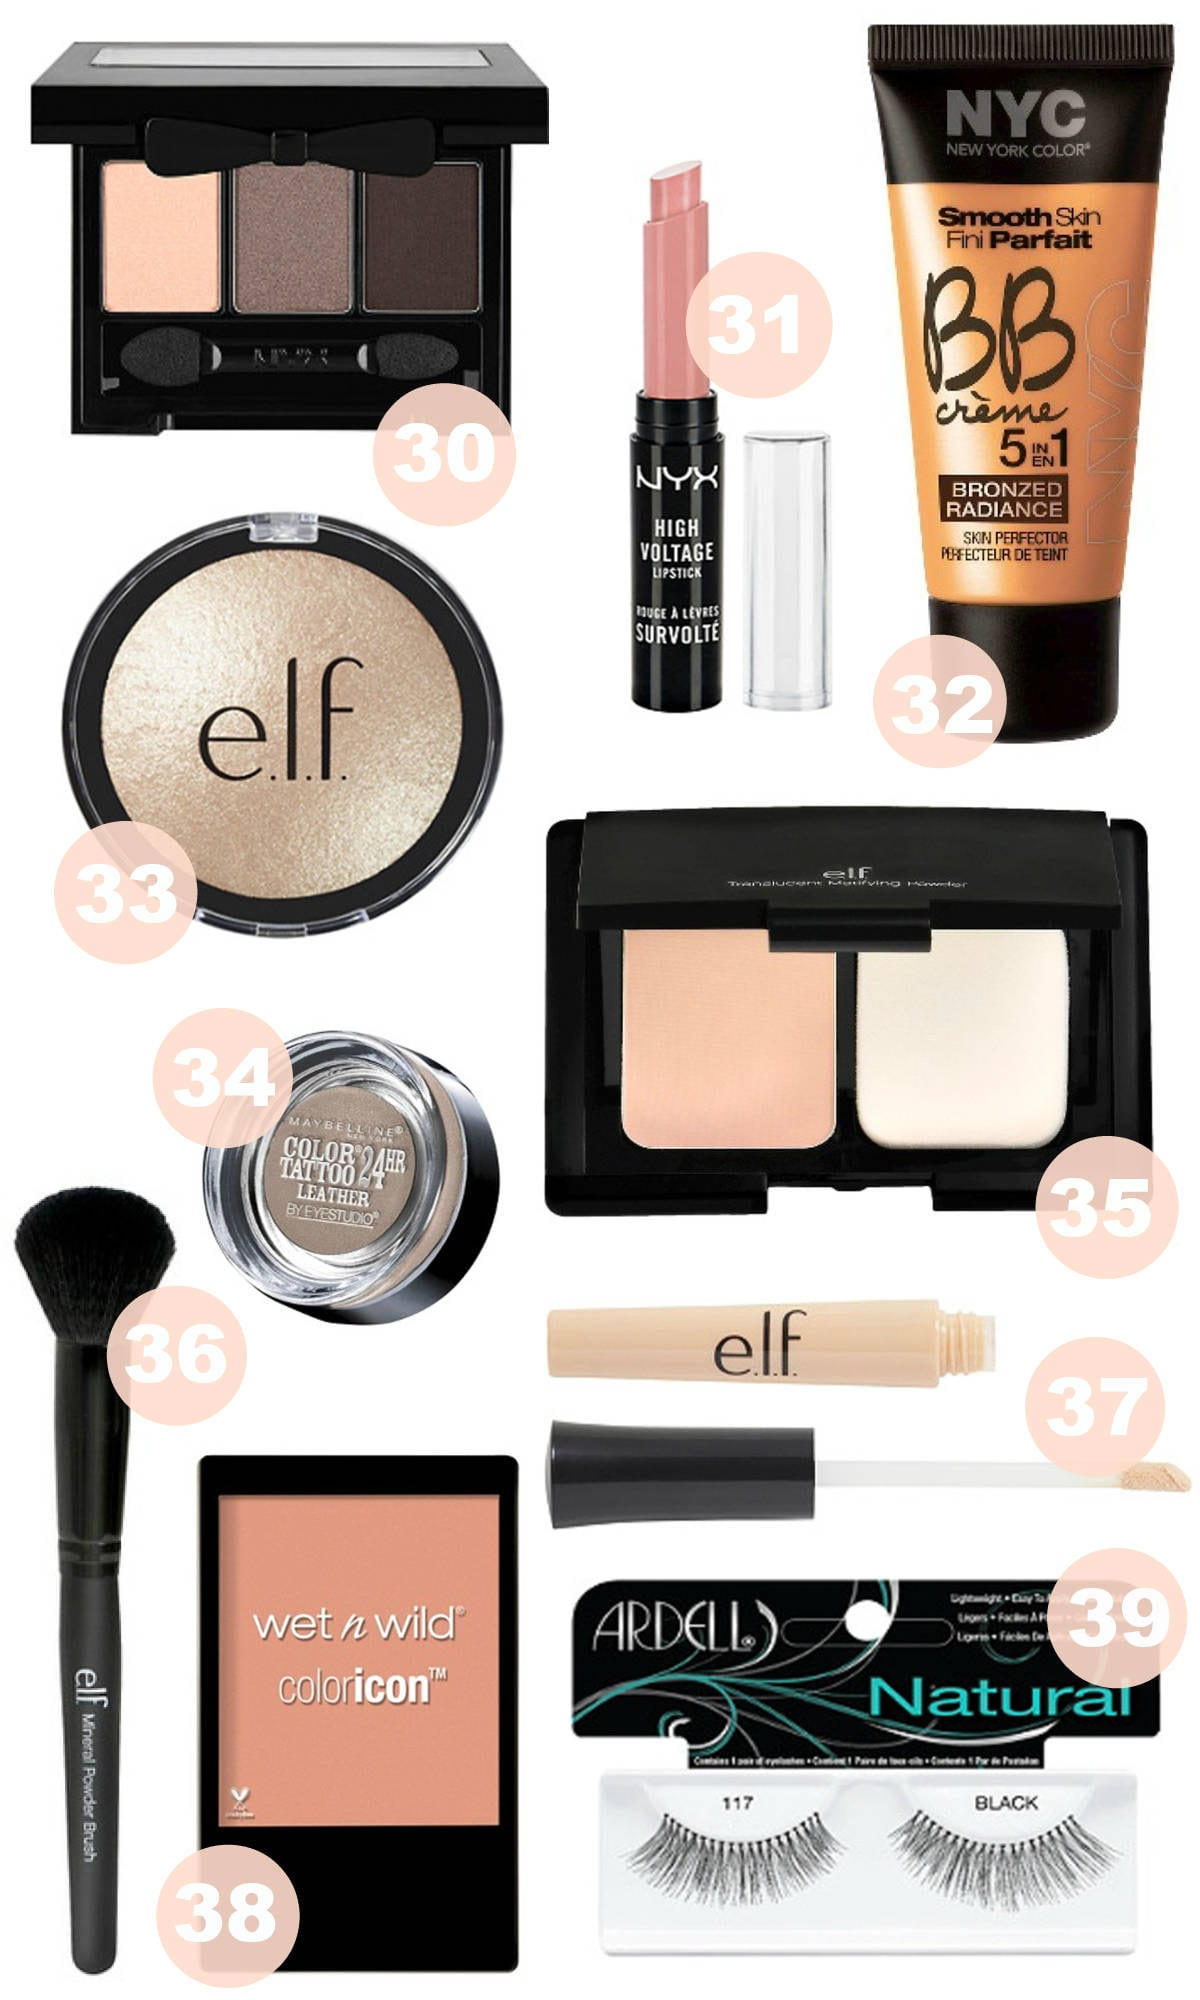 aamakeup-under-5-2 - Best Makeup Products Under $5 by popular Orlando beauty blogger Mash Elle